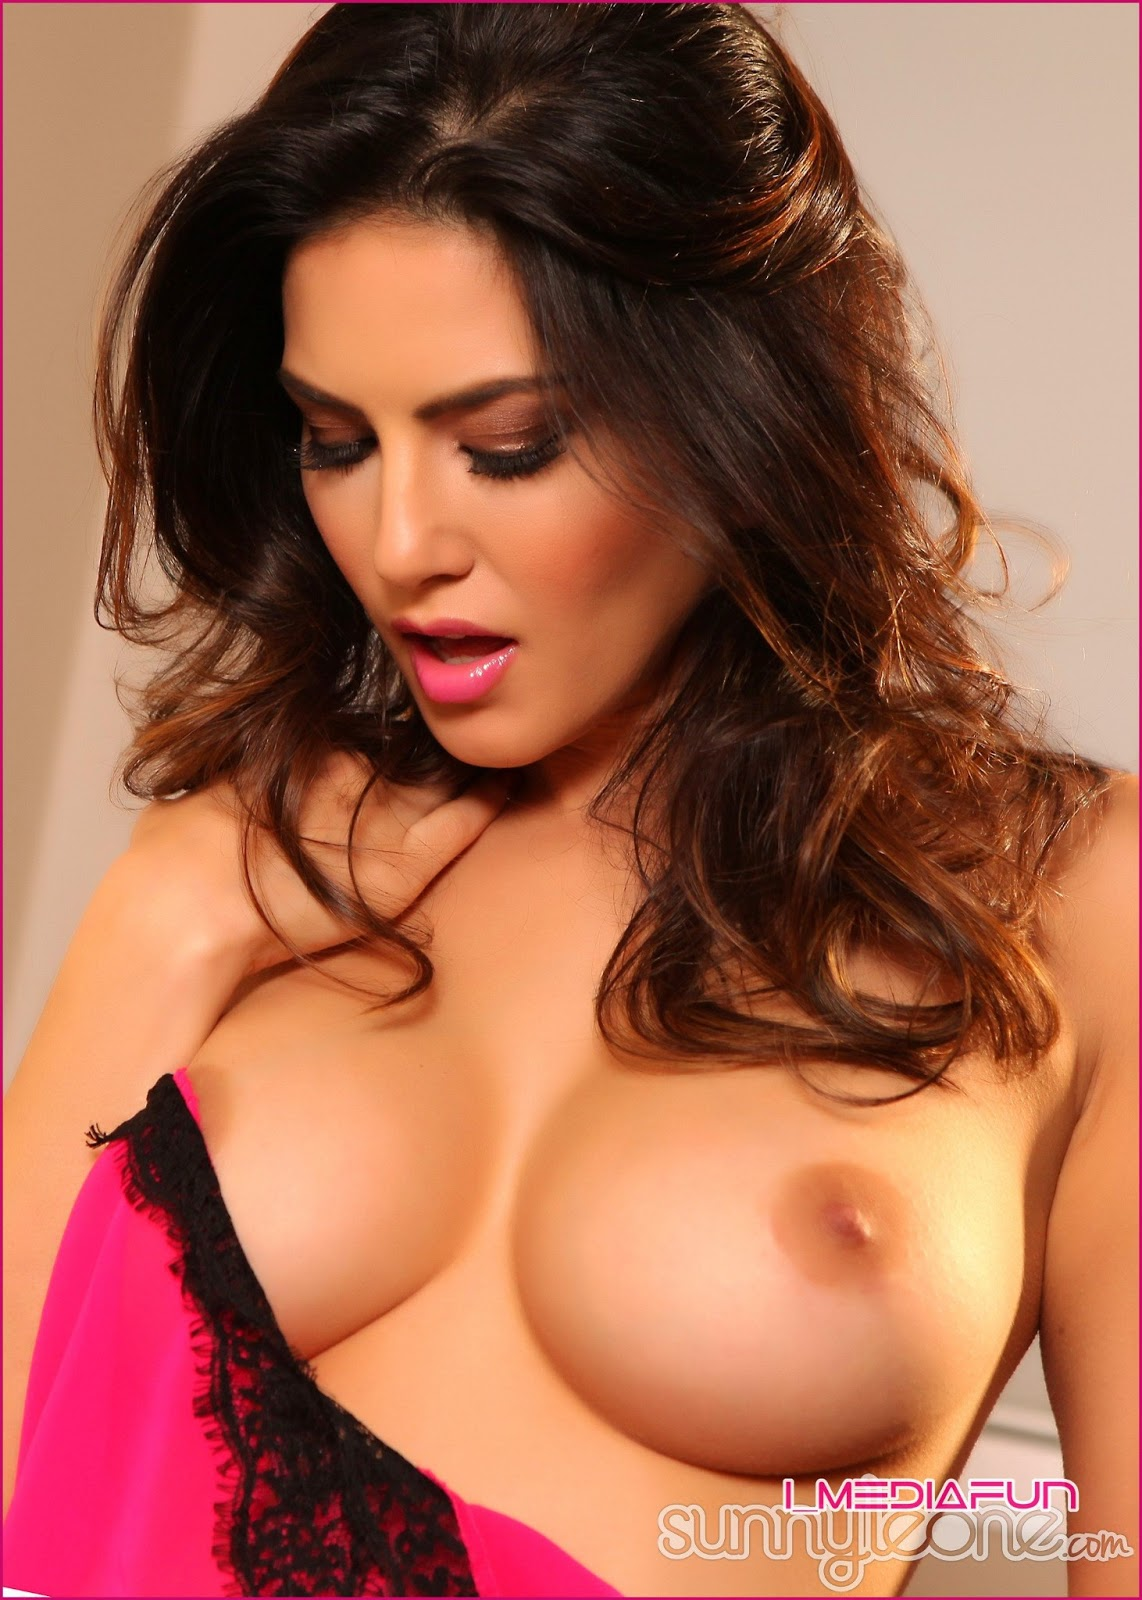 www.CelebTiger.com+Indian+Nude+Actress+Sunny+Leones+Pretty+in+Pink+(08+JUNE+13)++(16) Sunny Leone Showing Her Big Round Boobs And Juicy Pussy HQ Photo Gallery